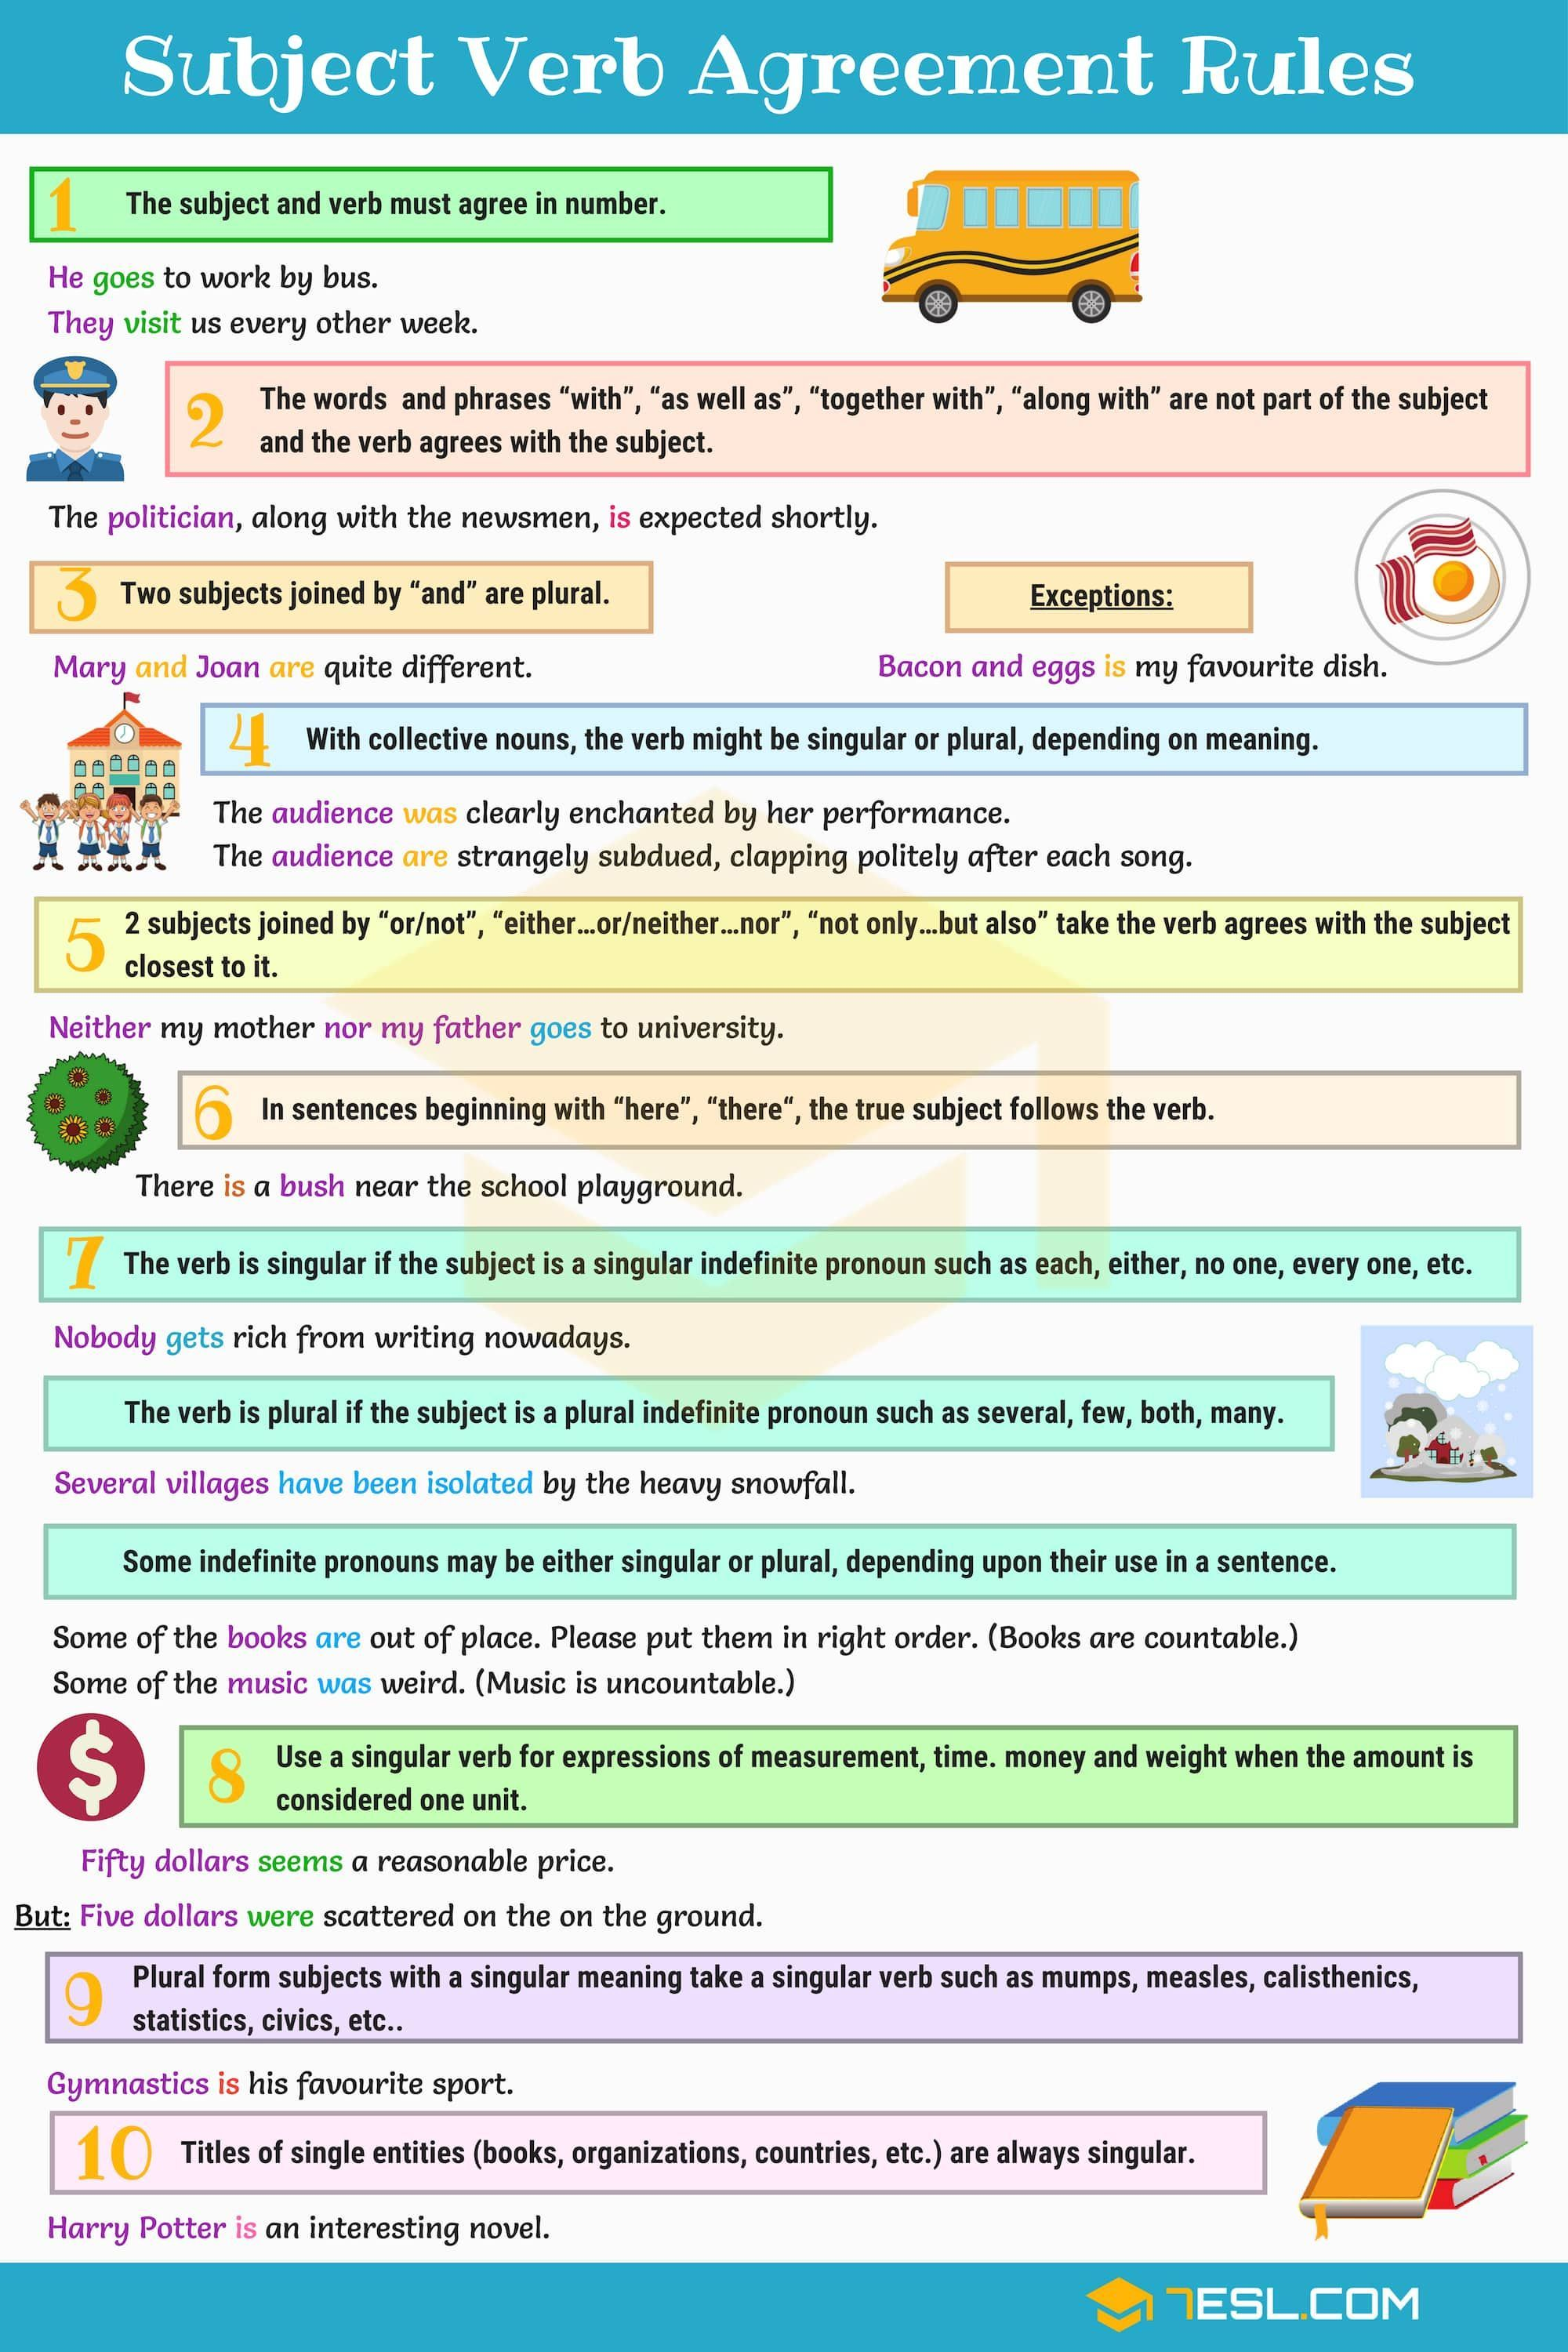 Subjects Verb Agreement